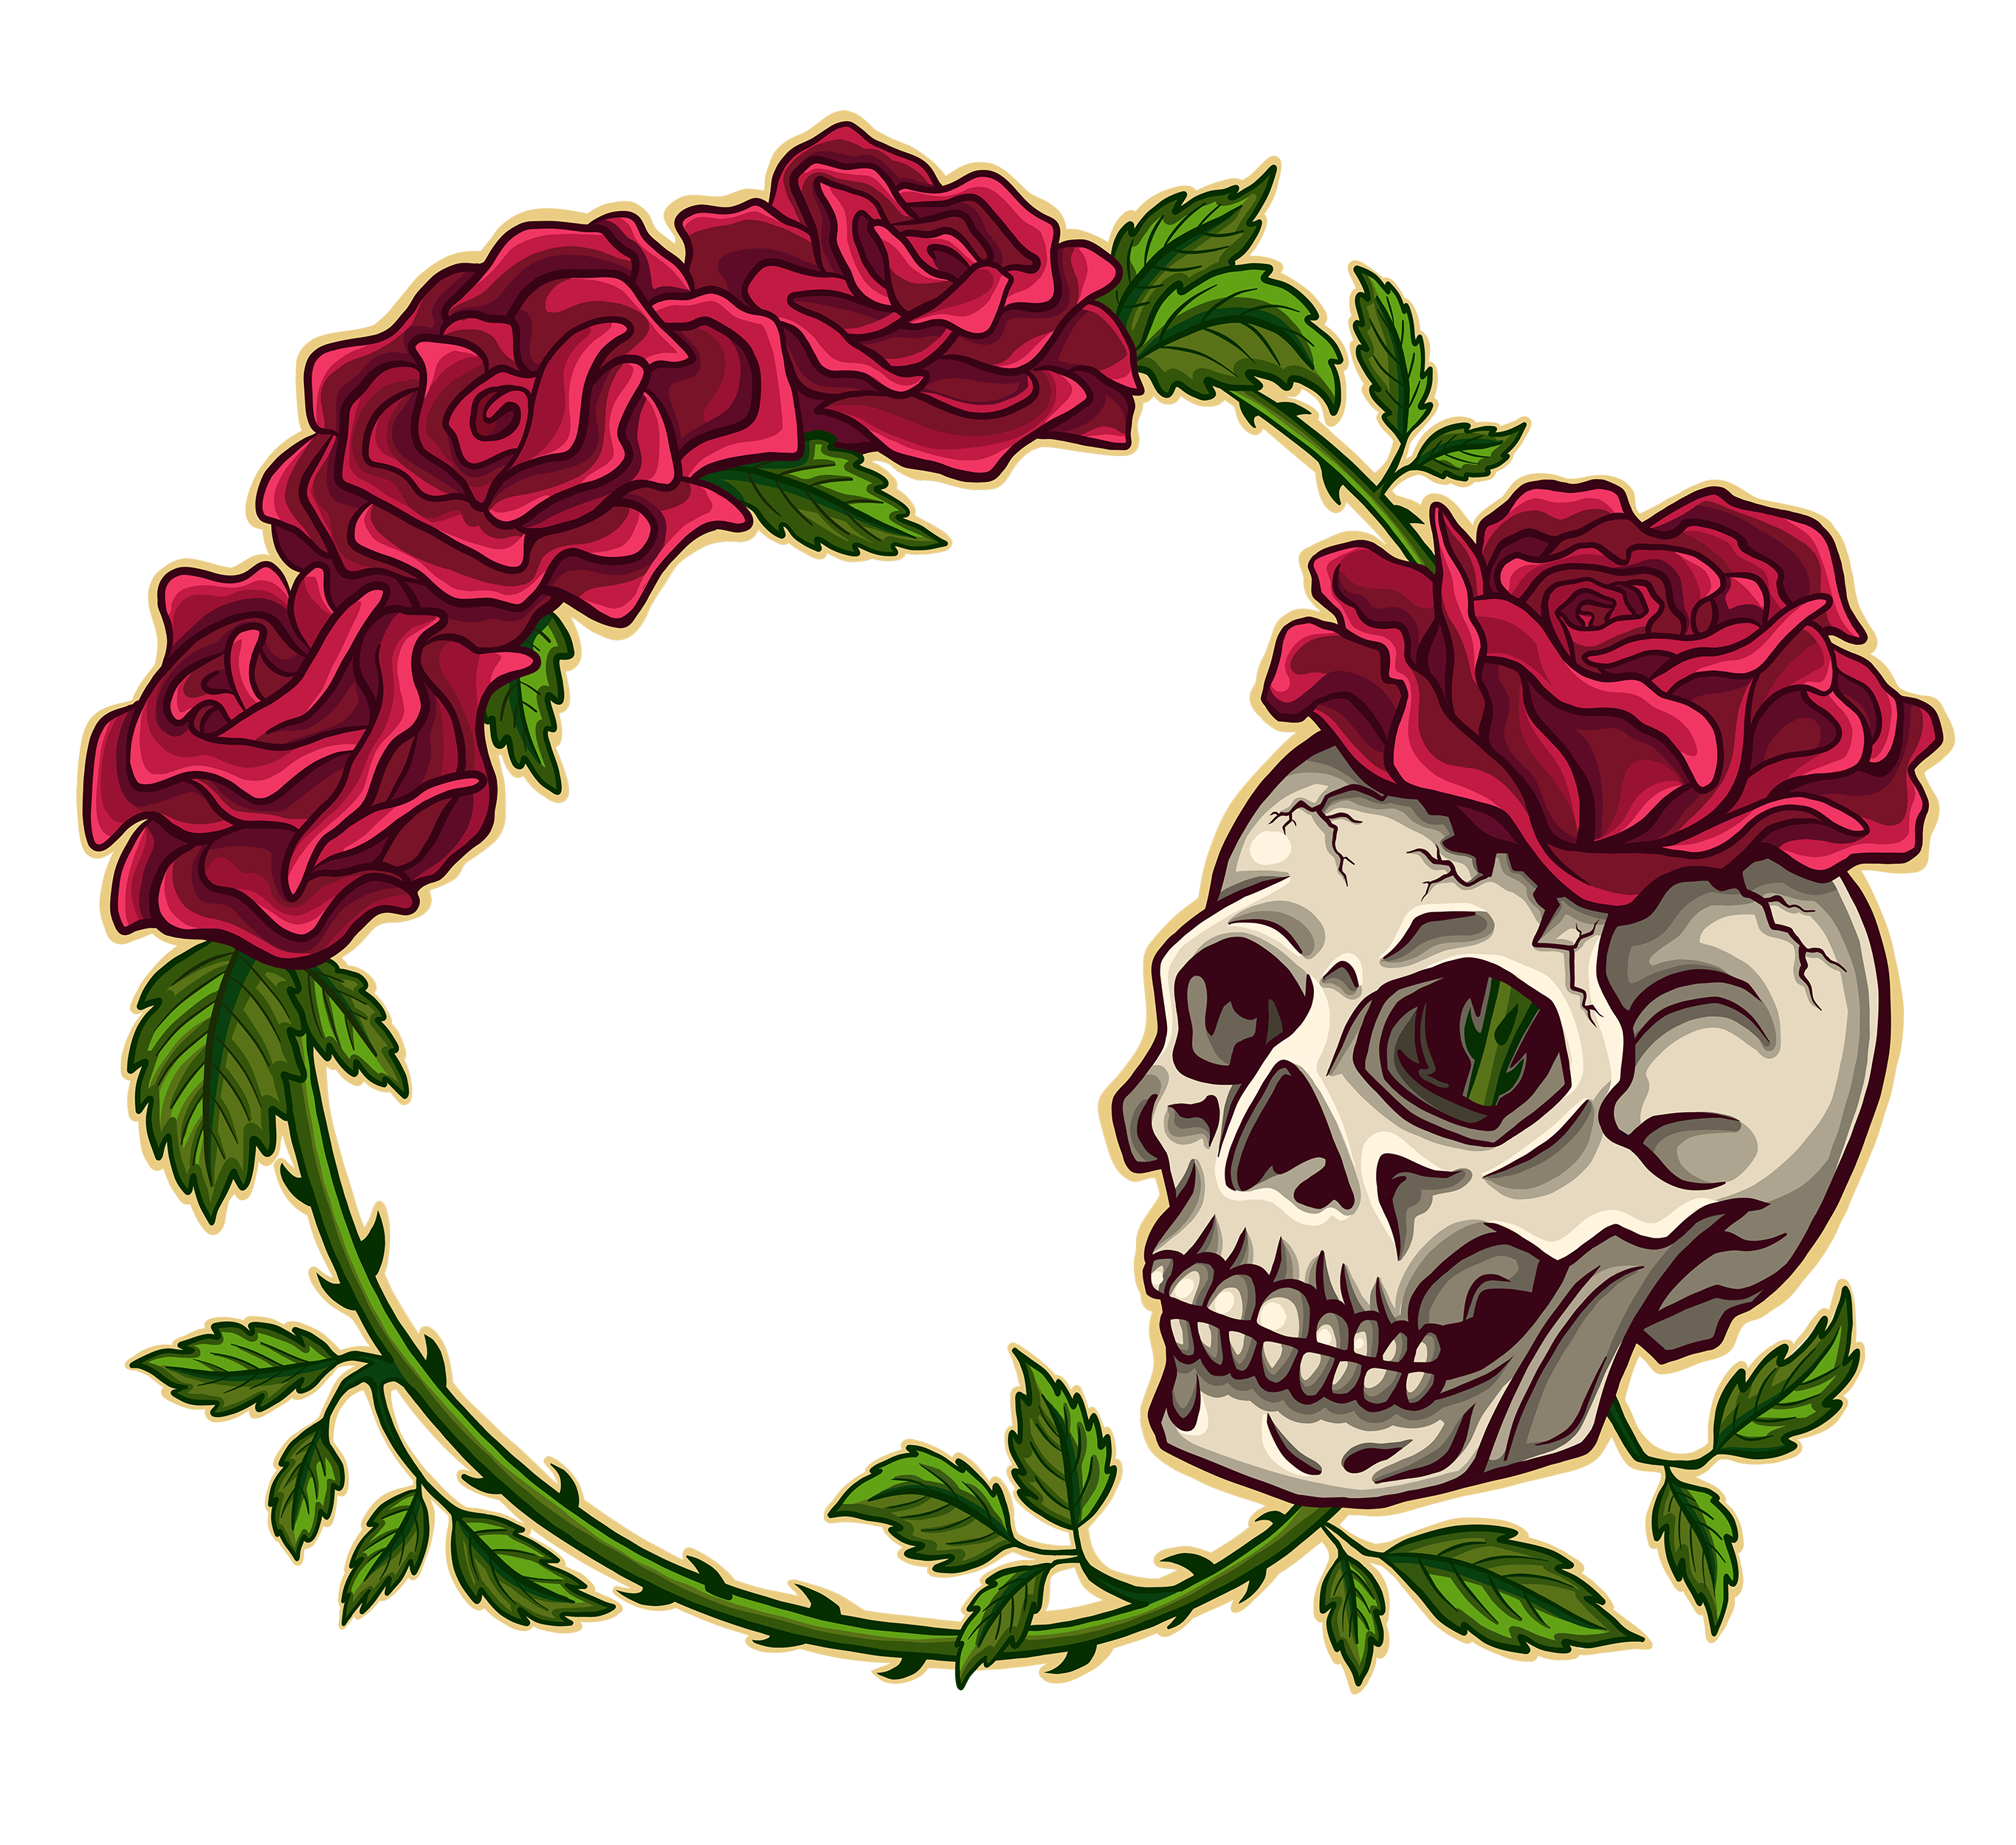 Red Rose and Skull Cartoon Illustration Logo Graphic by Jessica Laine Morris